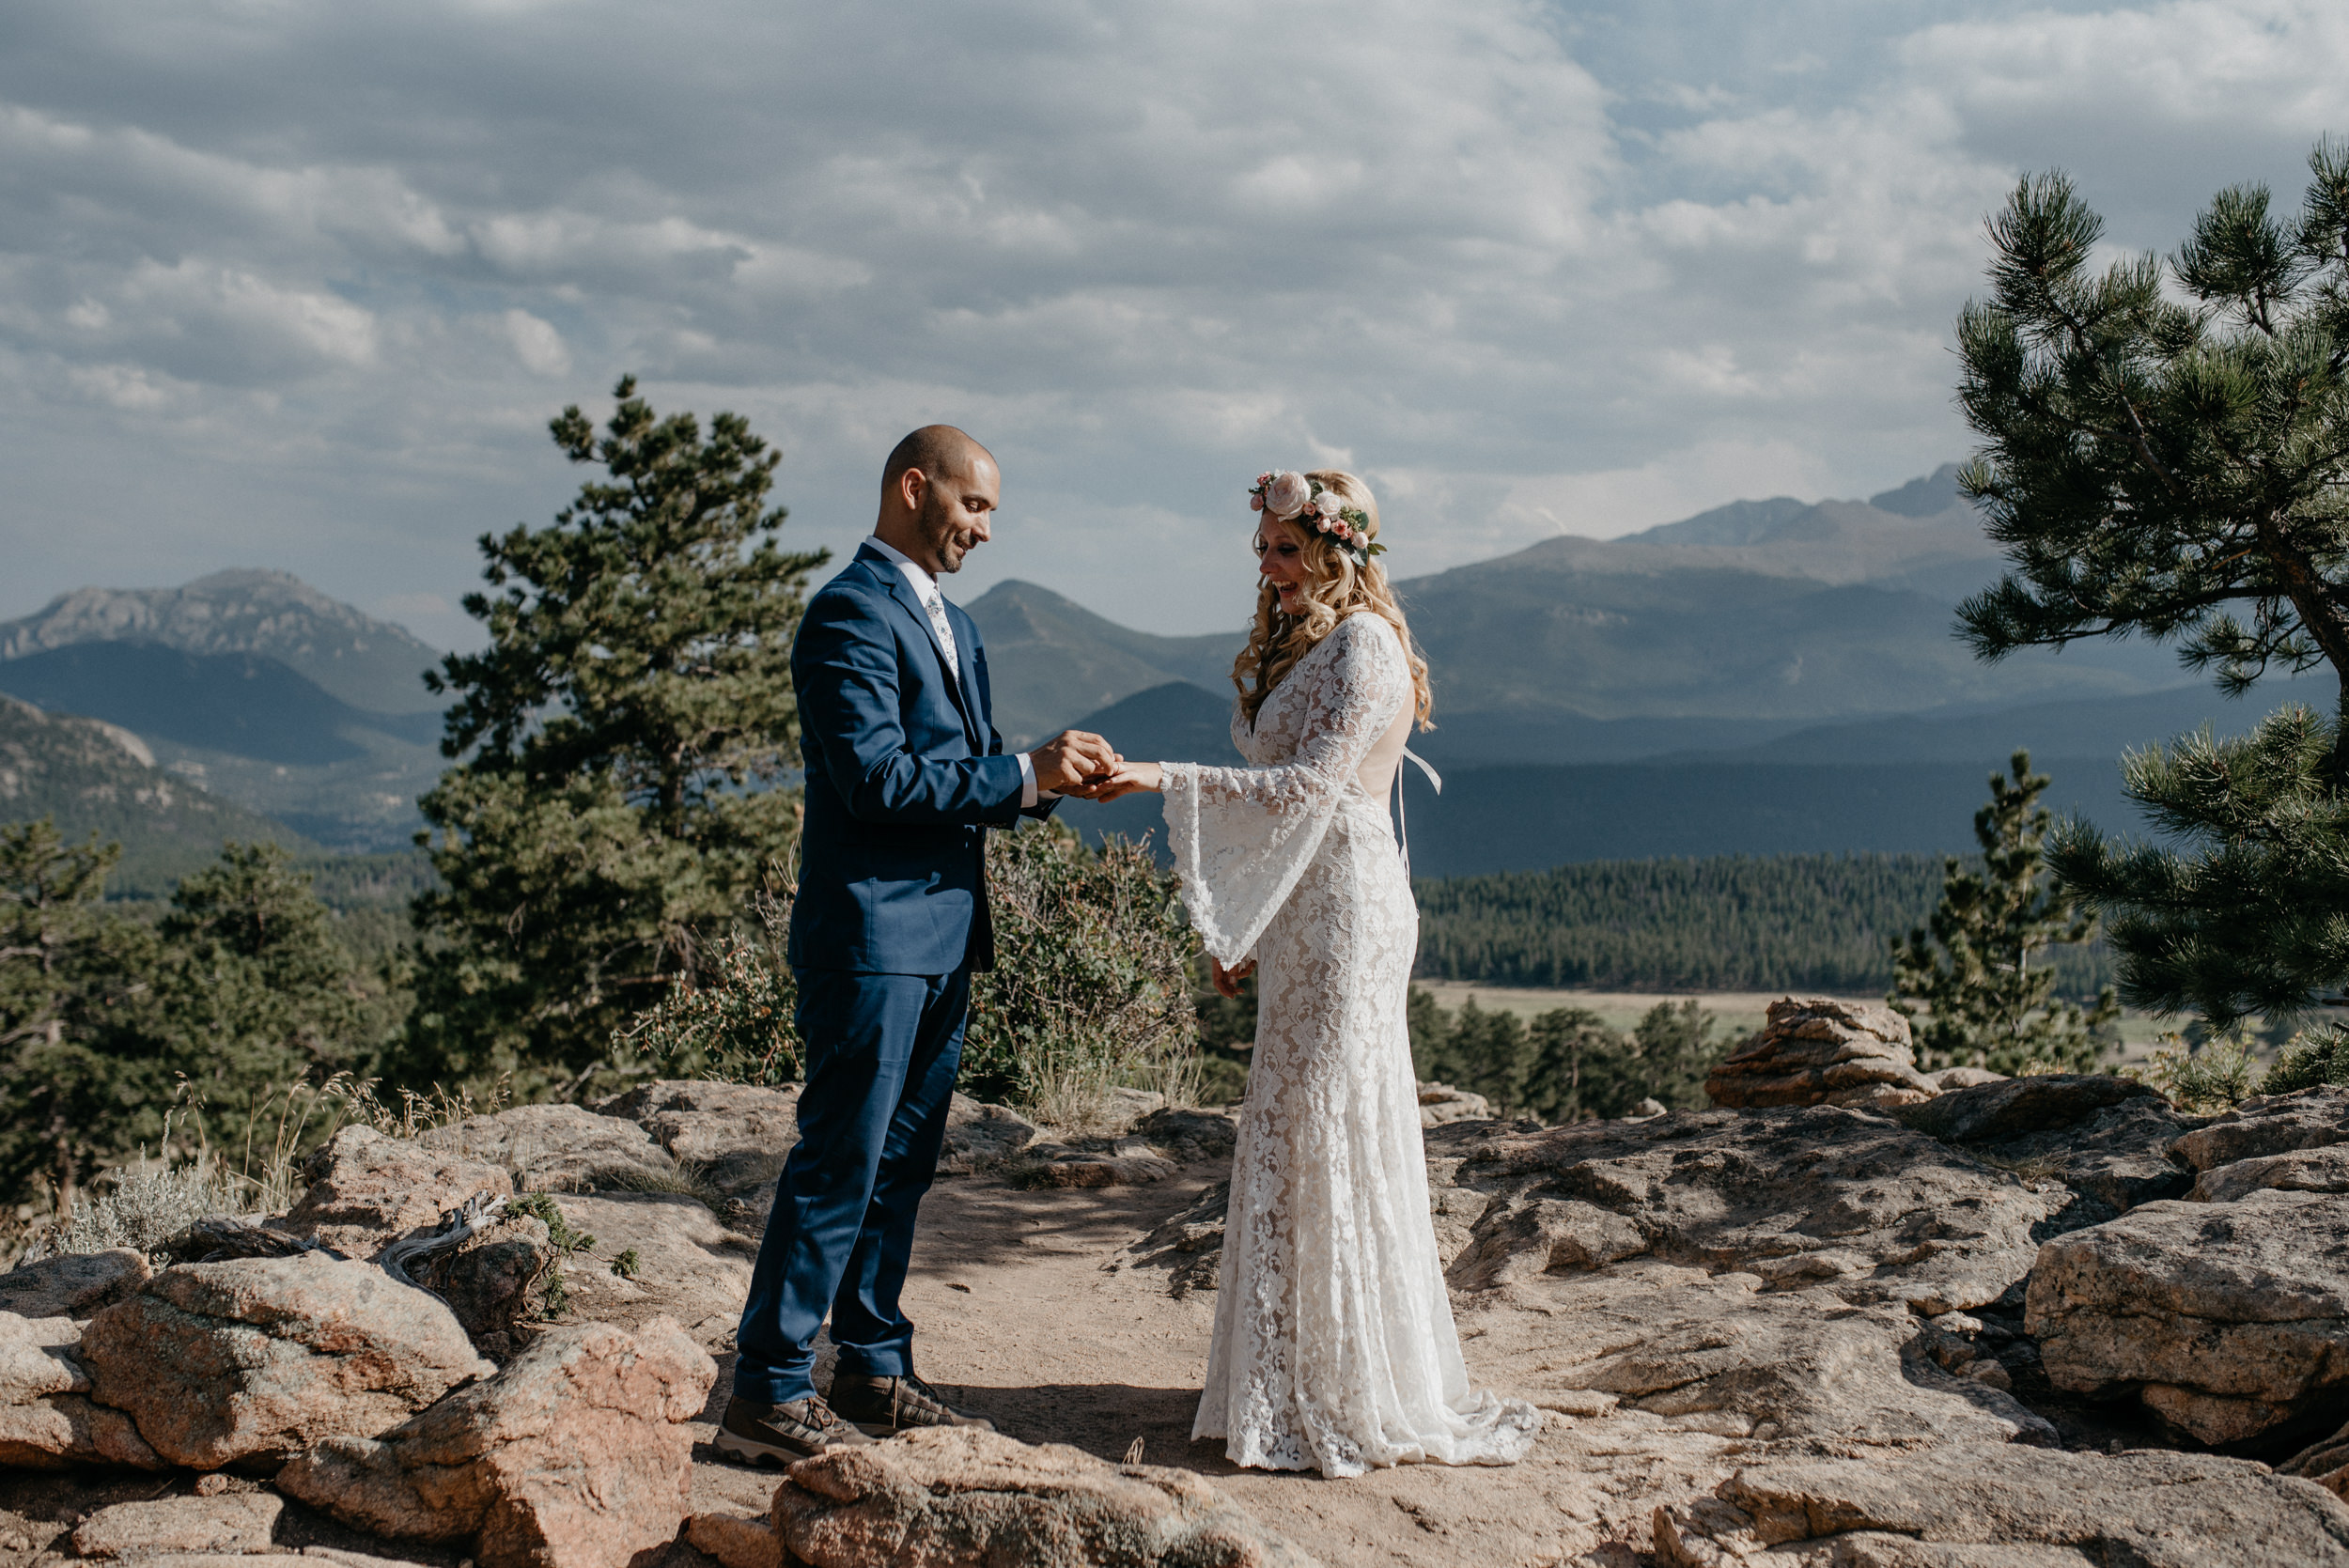 Groom putting on ring at intimate ceremony in Rocky Mountain National Park at 3M curve.